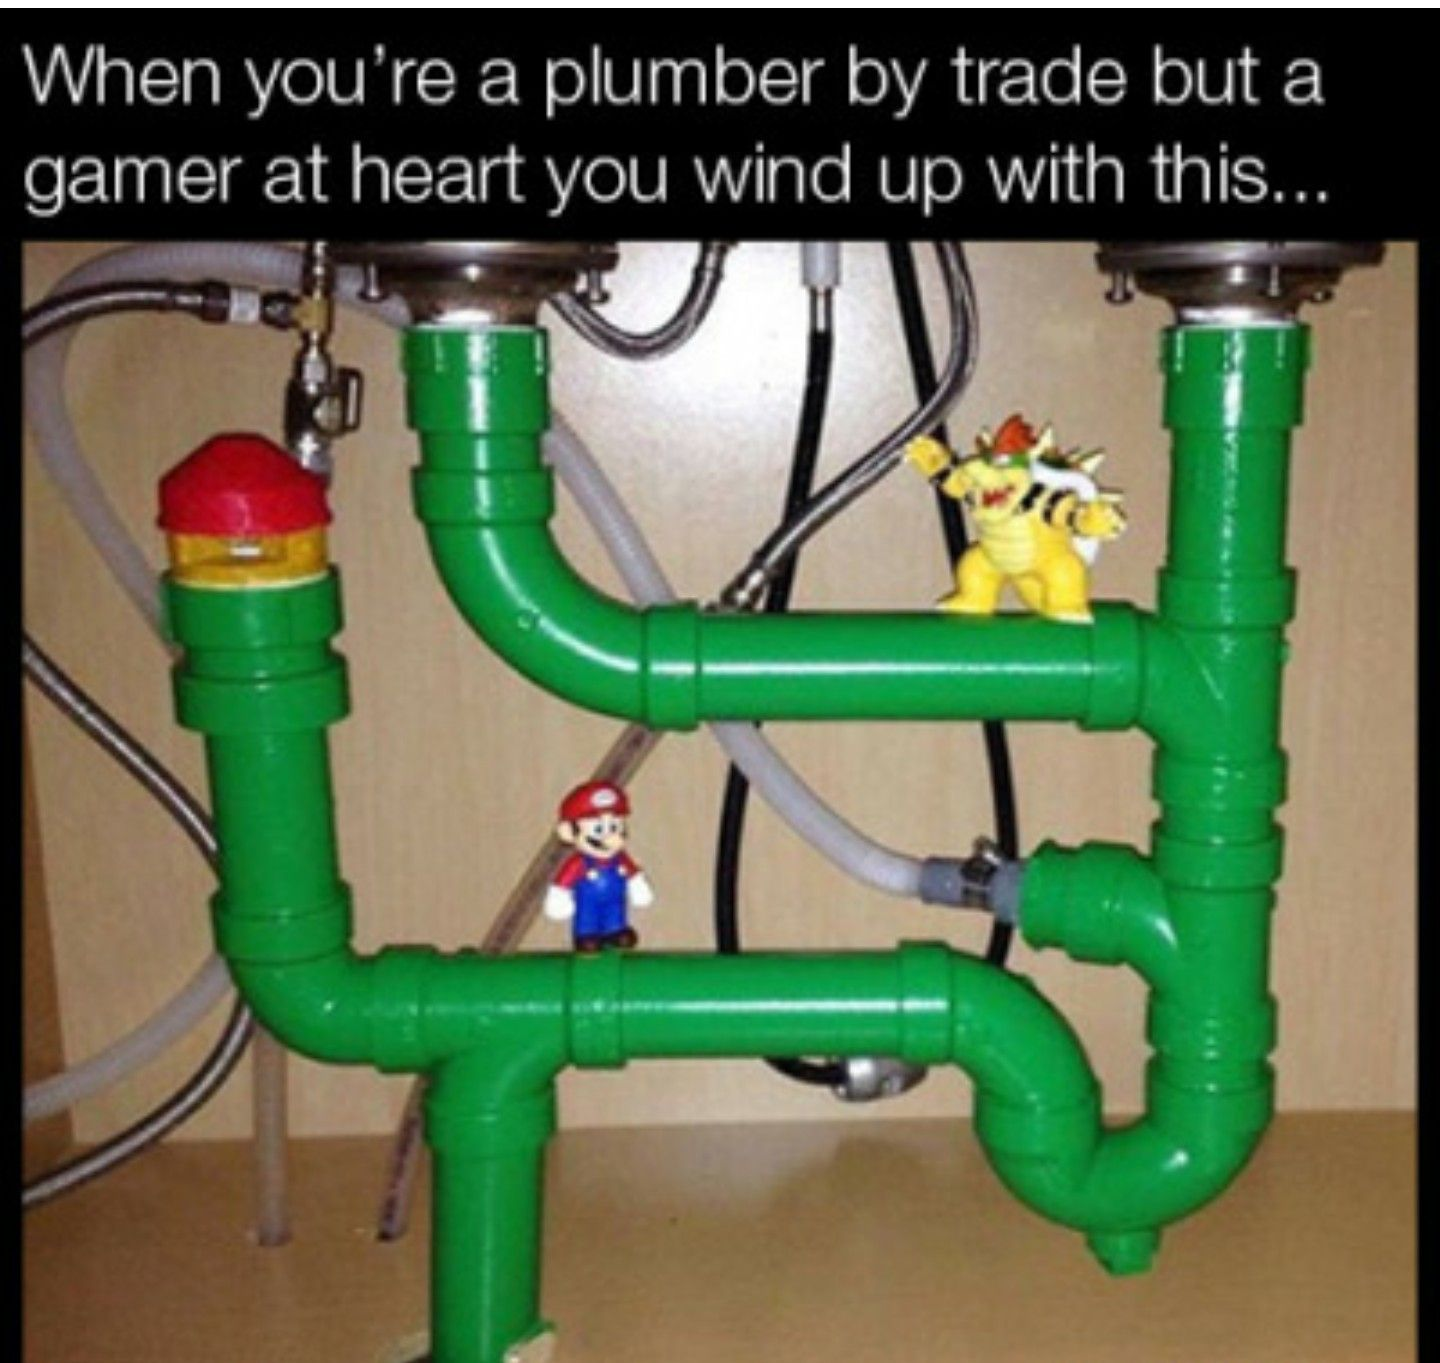 Plumbing Humor image by THA Heating, Air, & Plumbing